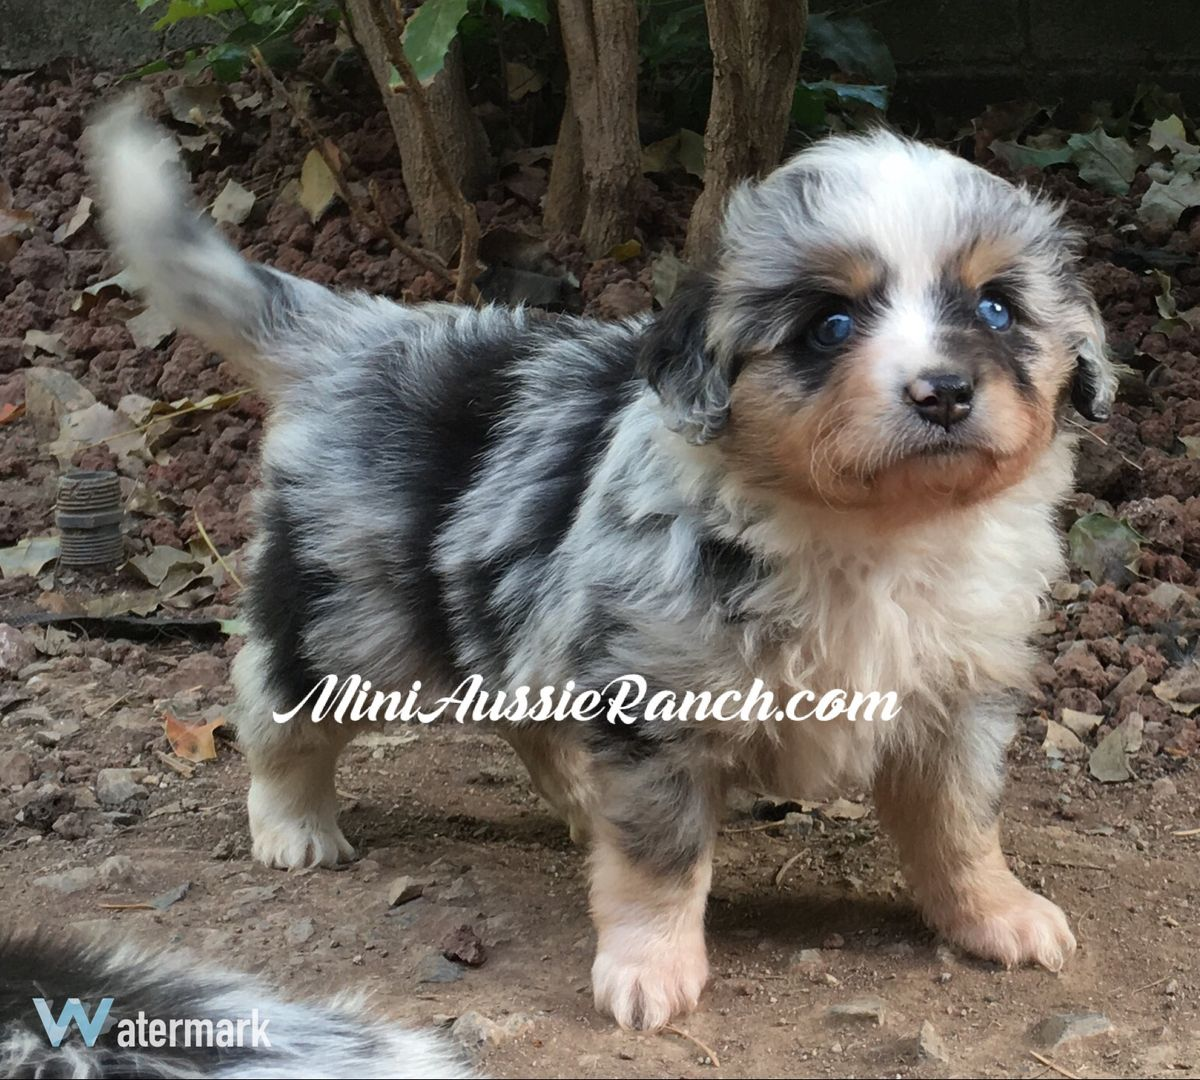 Miniature Australian Shepherd Beautiful dogs, Puppies